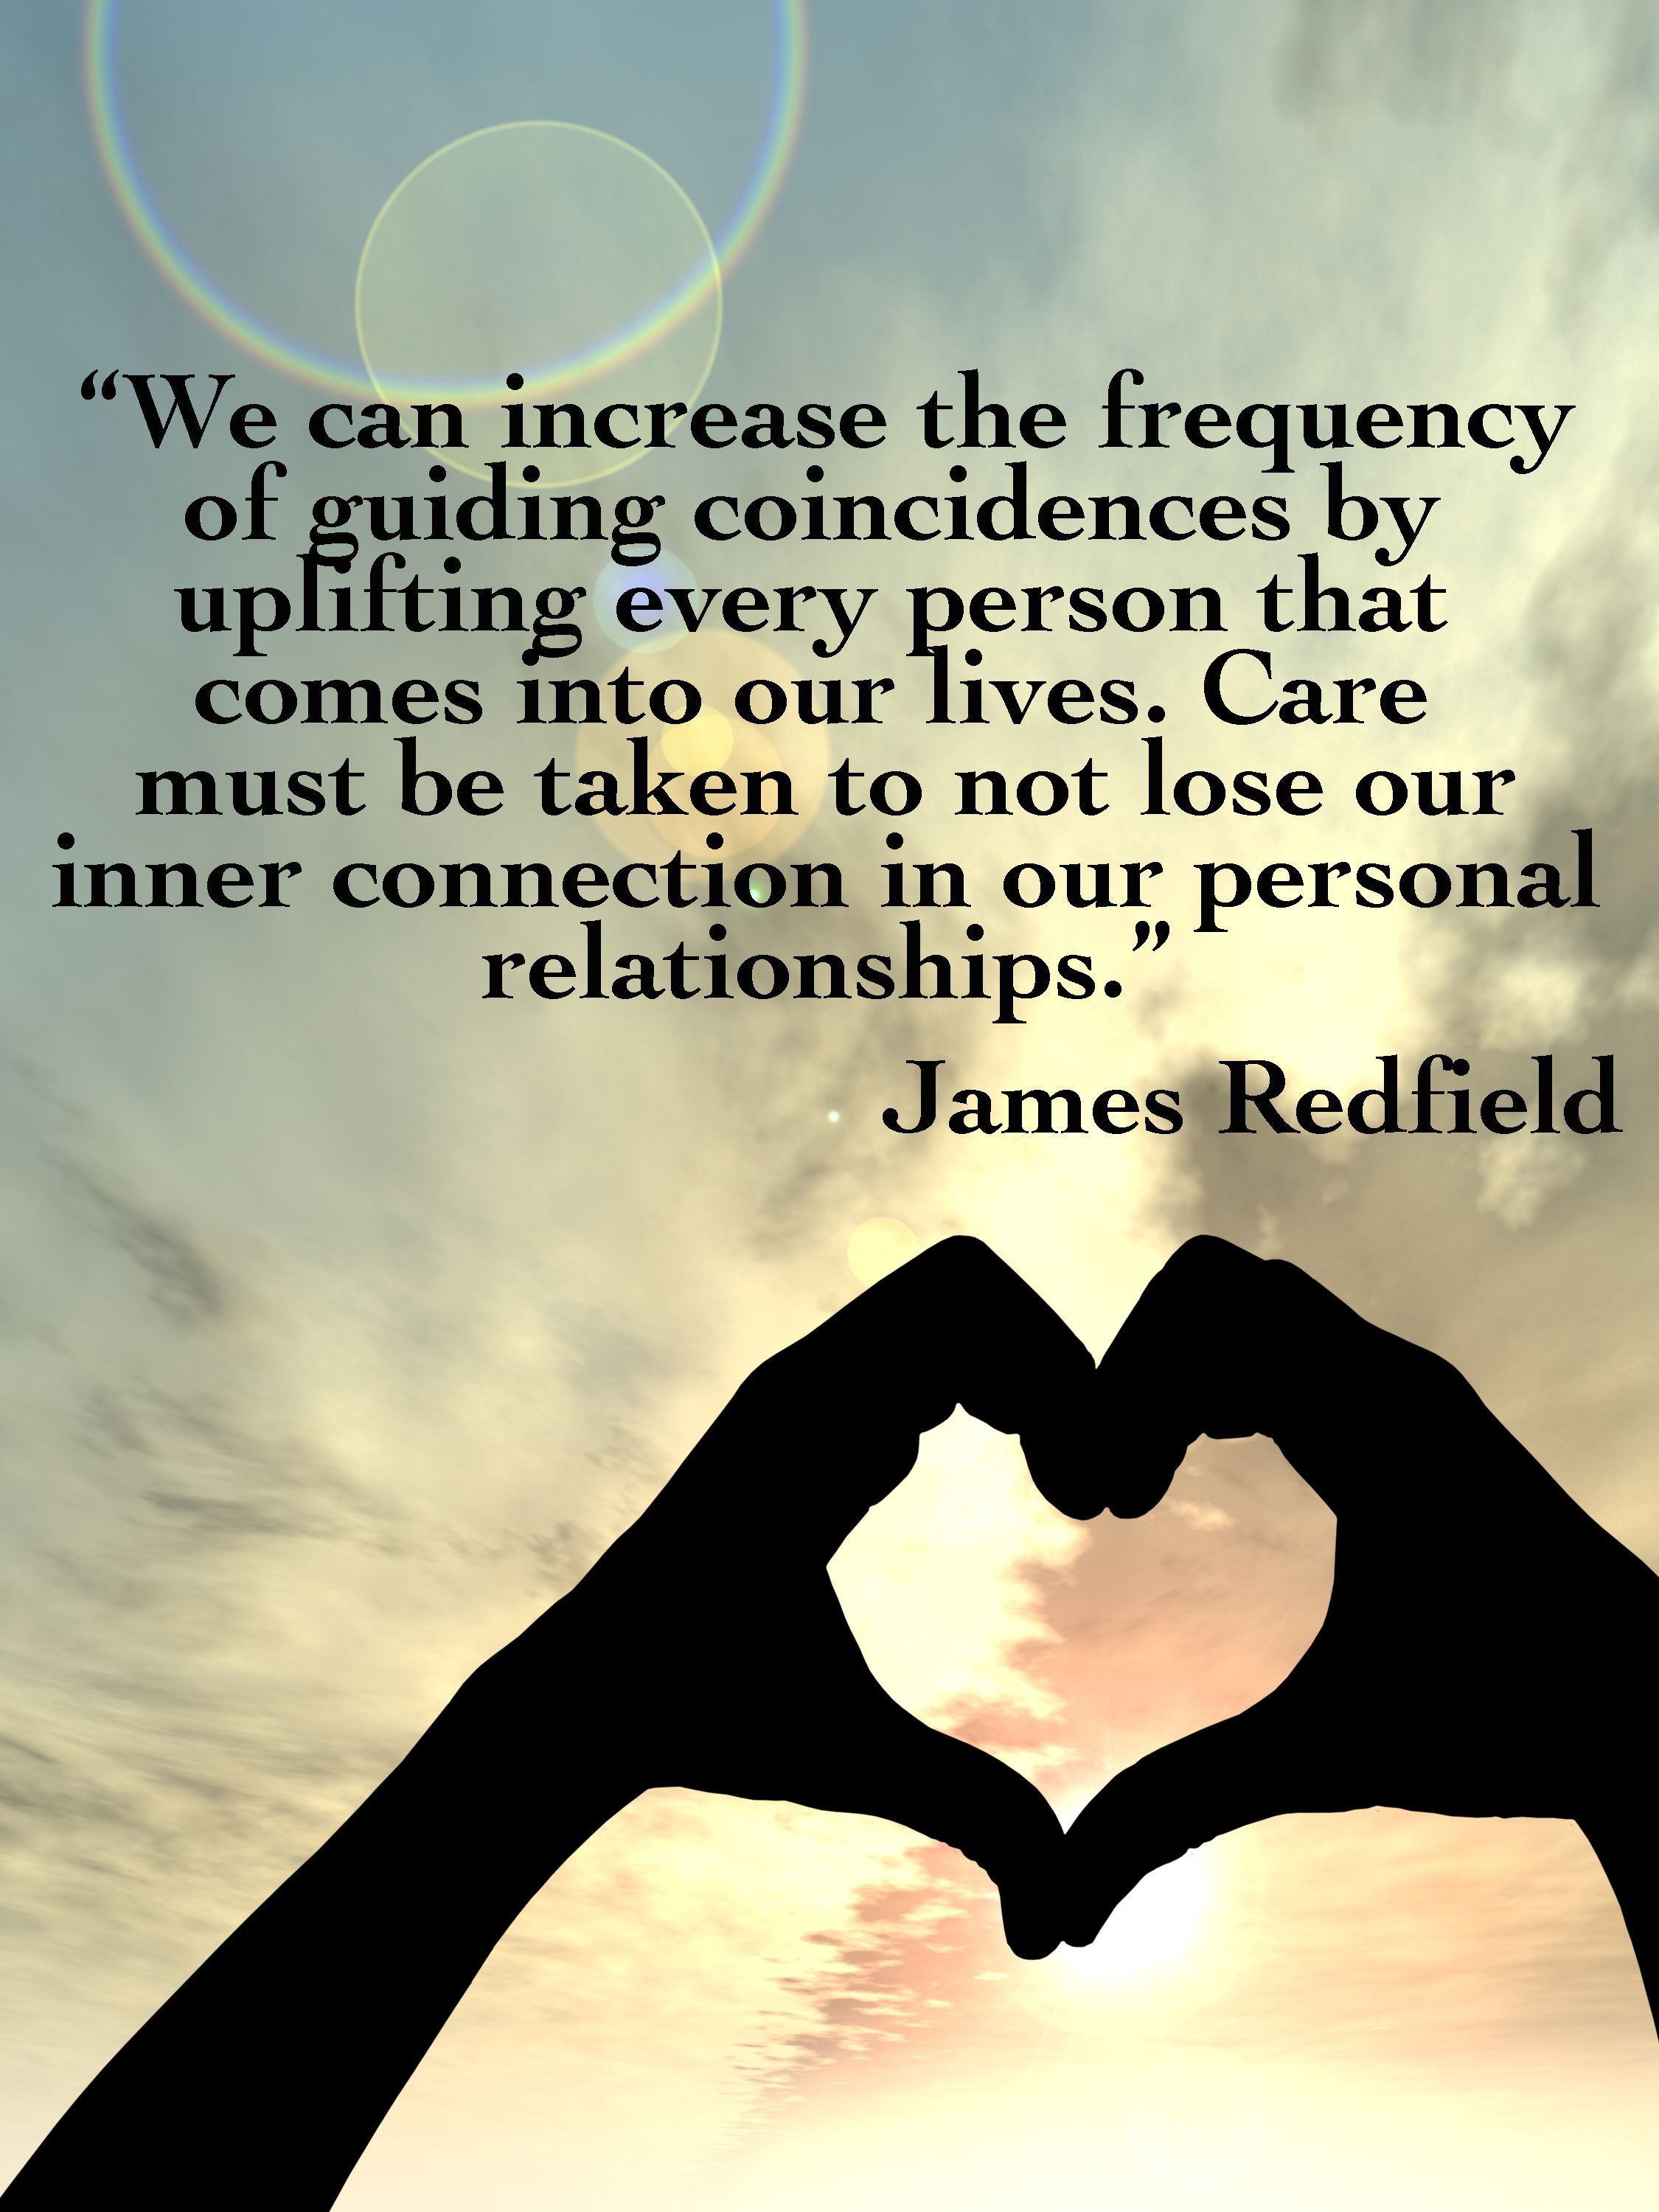 Spiritual Inspirational Quotes Interesting Inspirational And Spiritual Quotesjames Redfield  Celestine